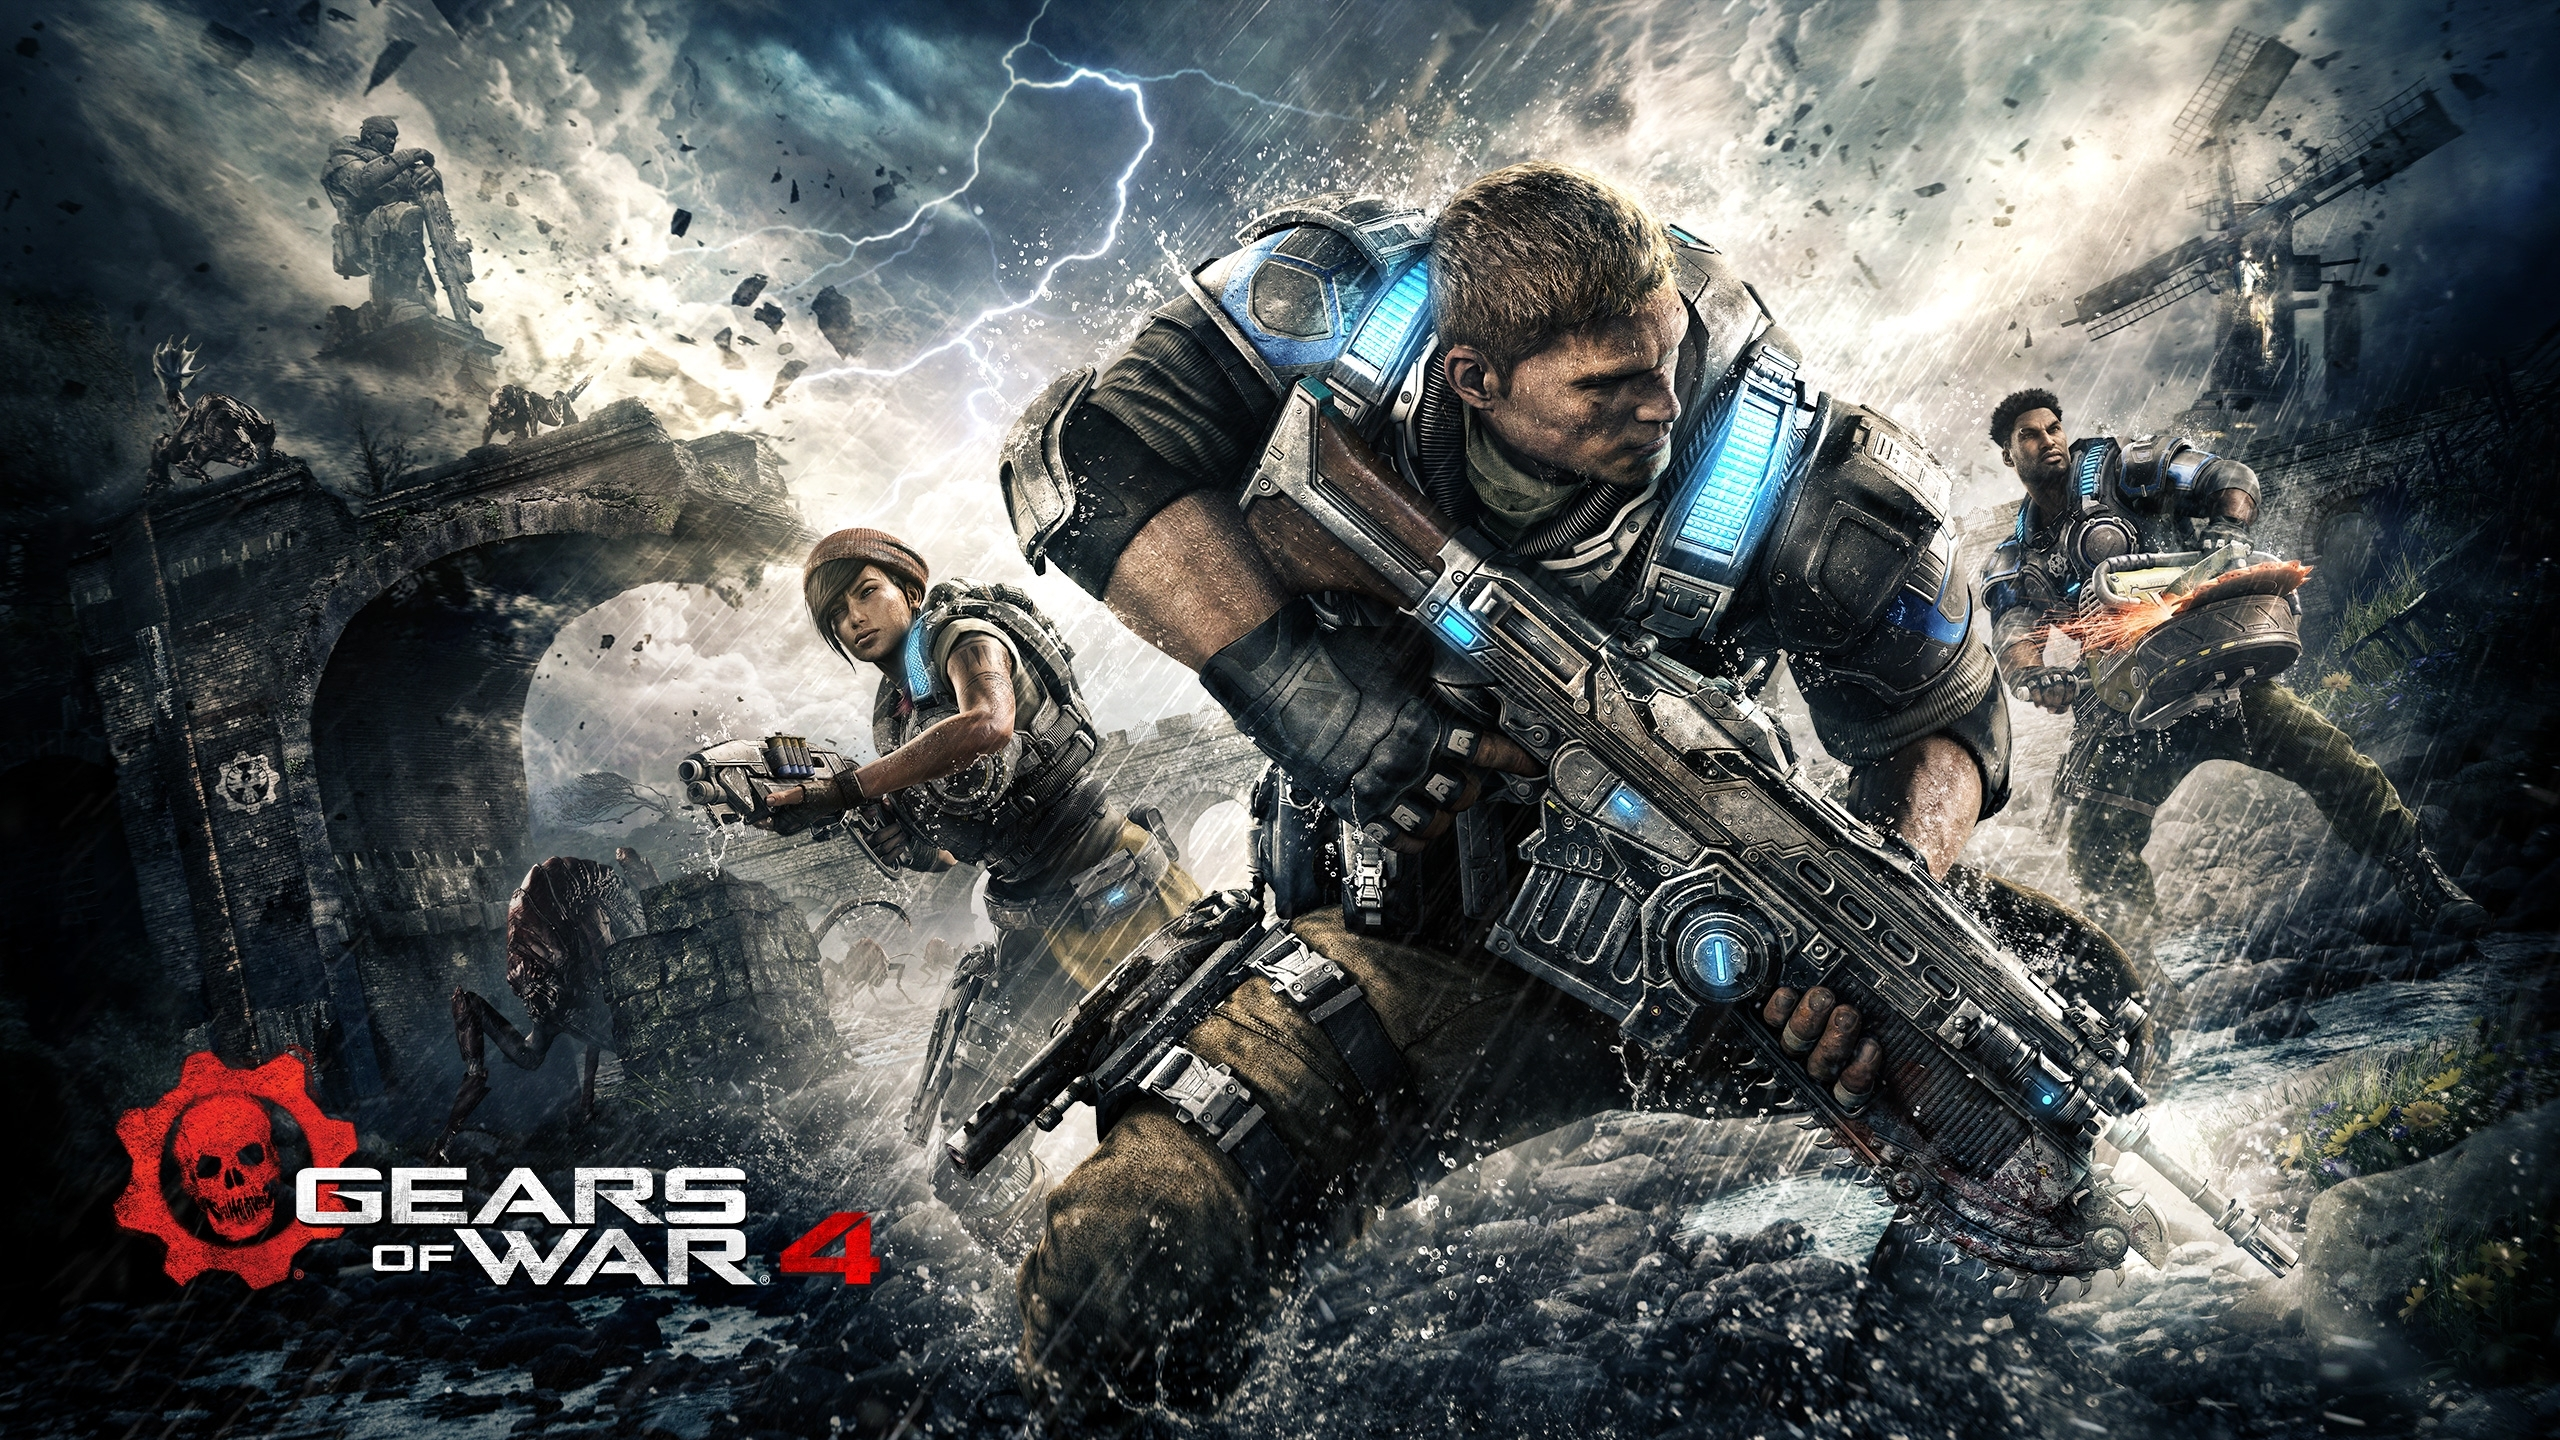 257 gears of war hd wallpapers | background images - wallpaper abyss